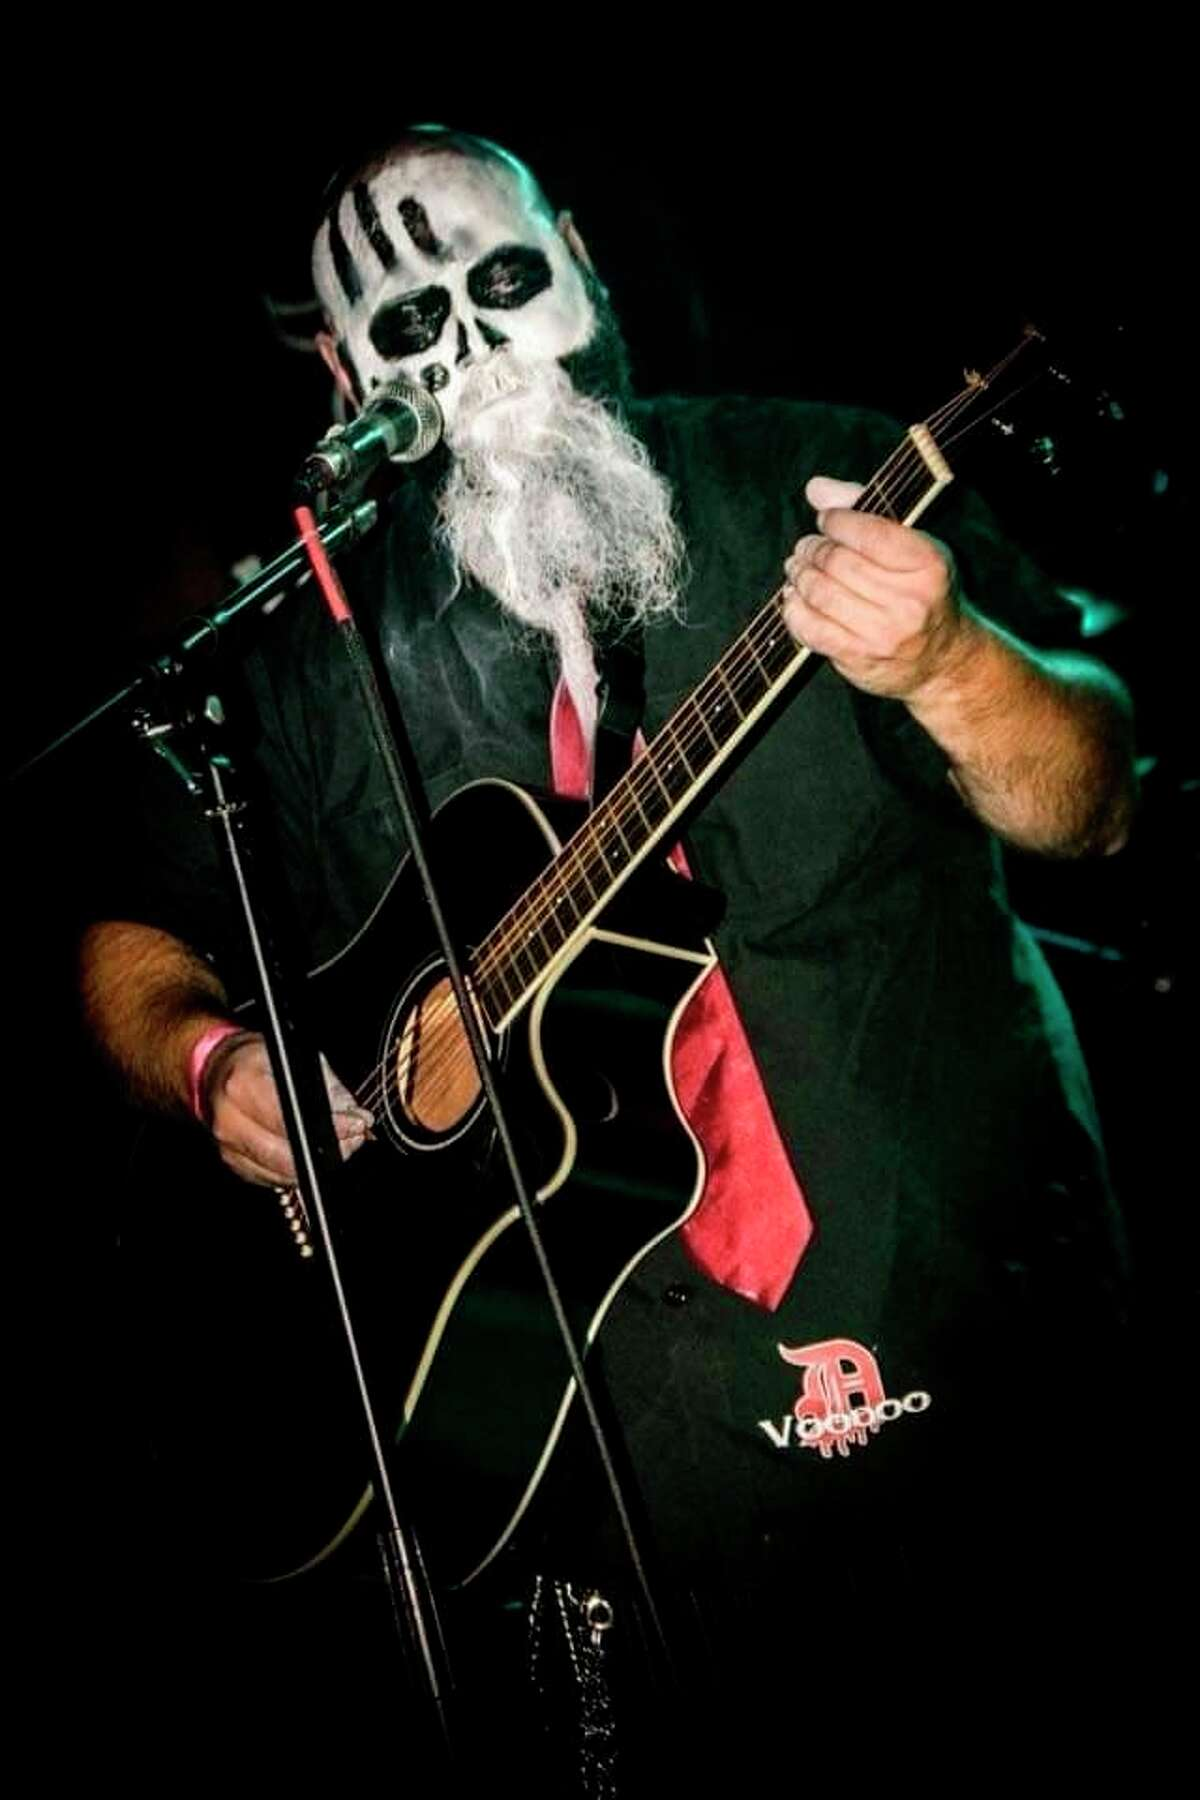 Reuben Kubacki has performed on stage with hard rock, punk rock, and heavy metal bands. He has been on the stage with Rob Zombie, Limp Bizkit, Five Finger Death Punch, and Megadeth.Besides playing in two bands, he has his own record company, Voodoo Electric Music.(Courtesy Photo)